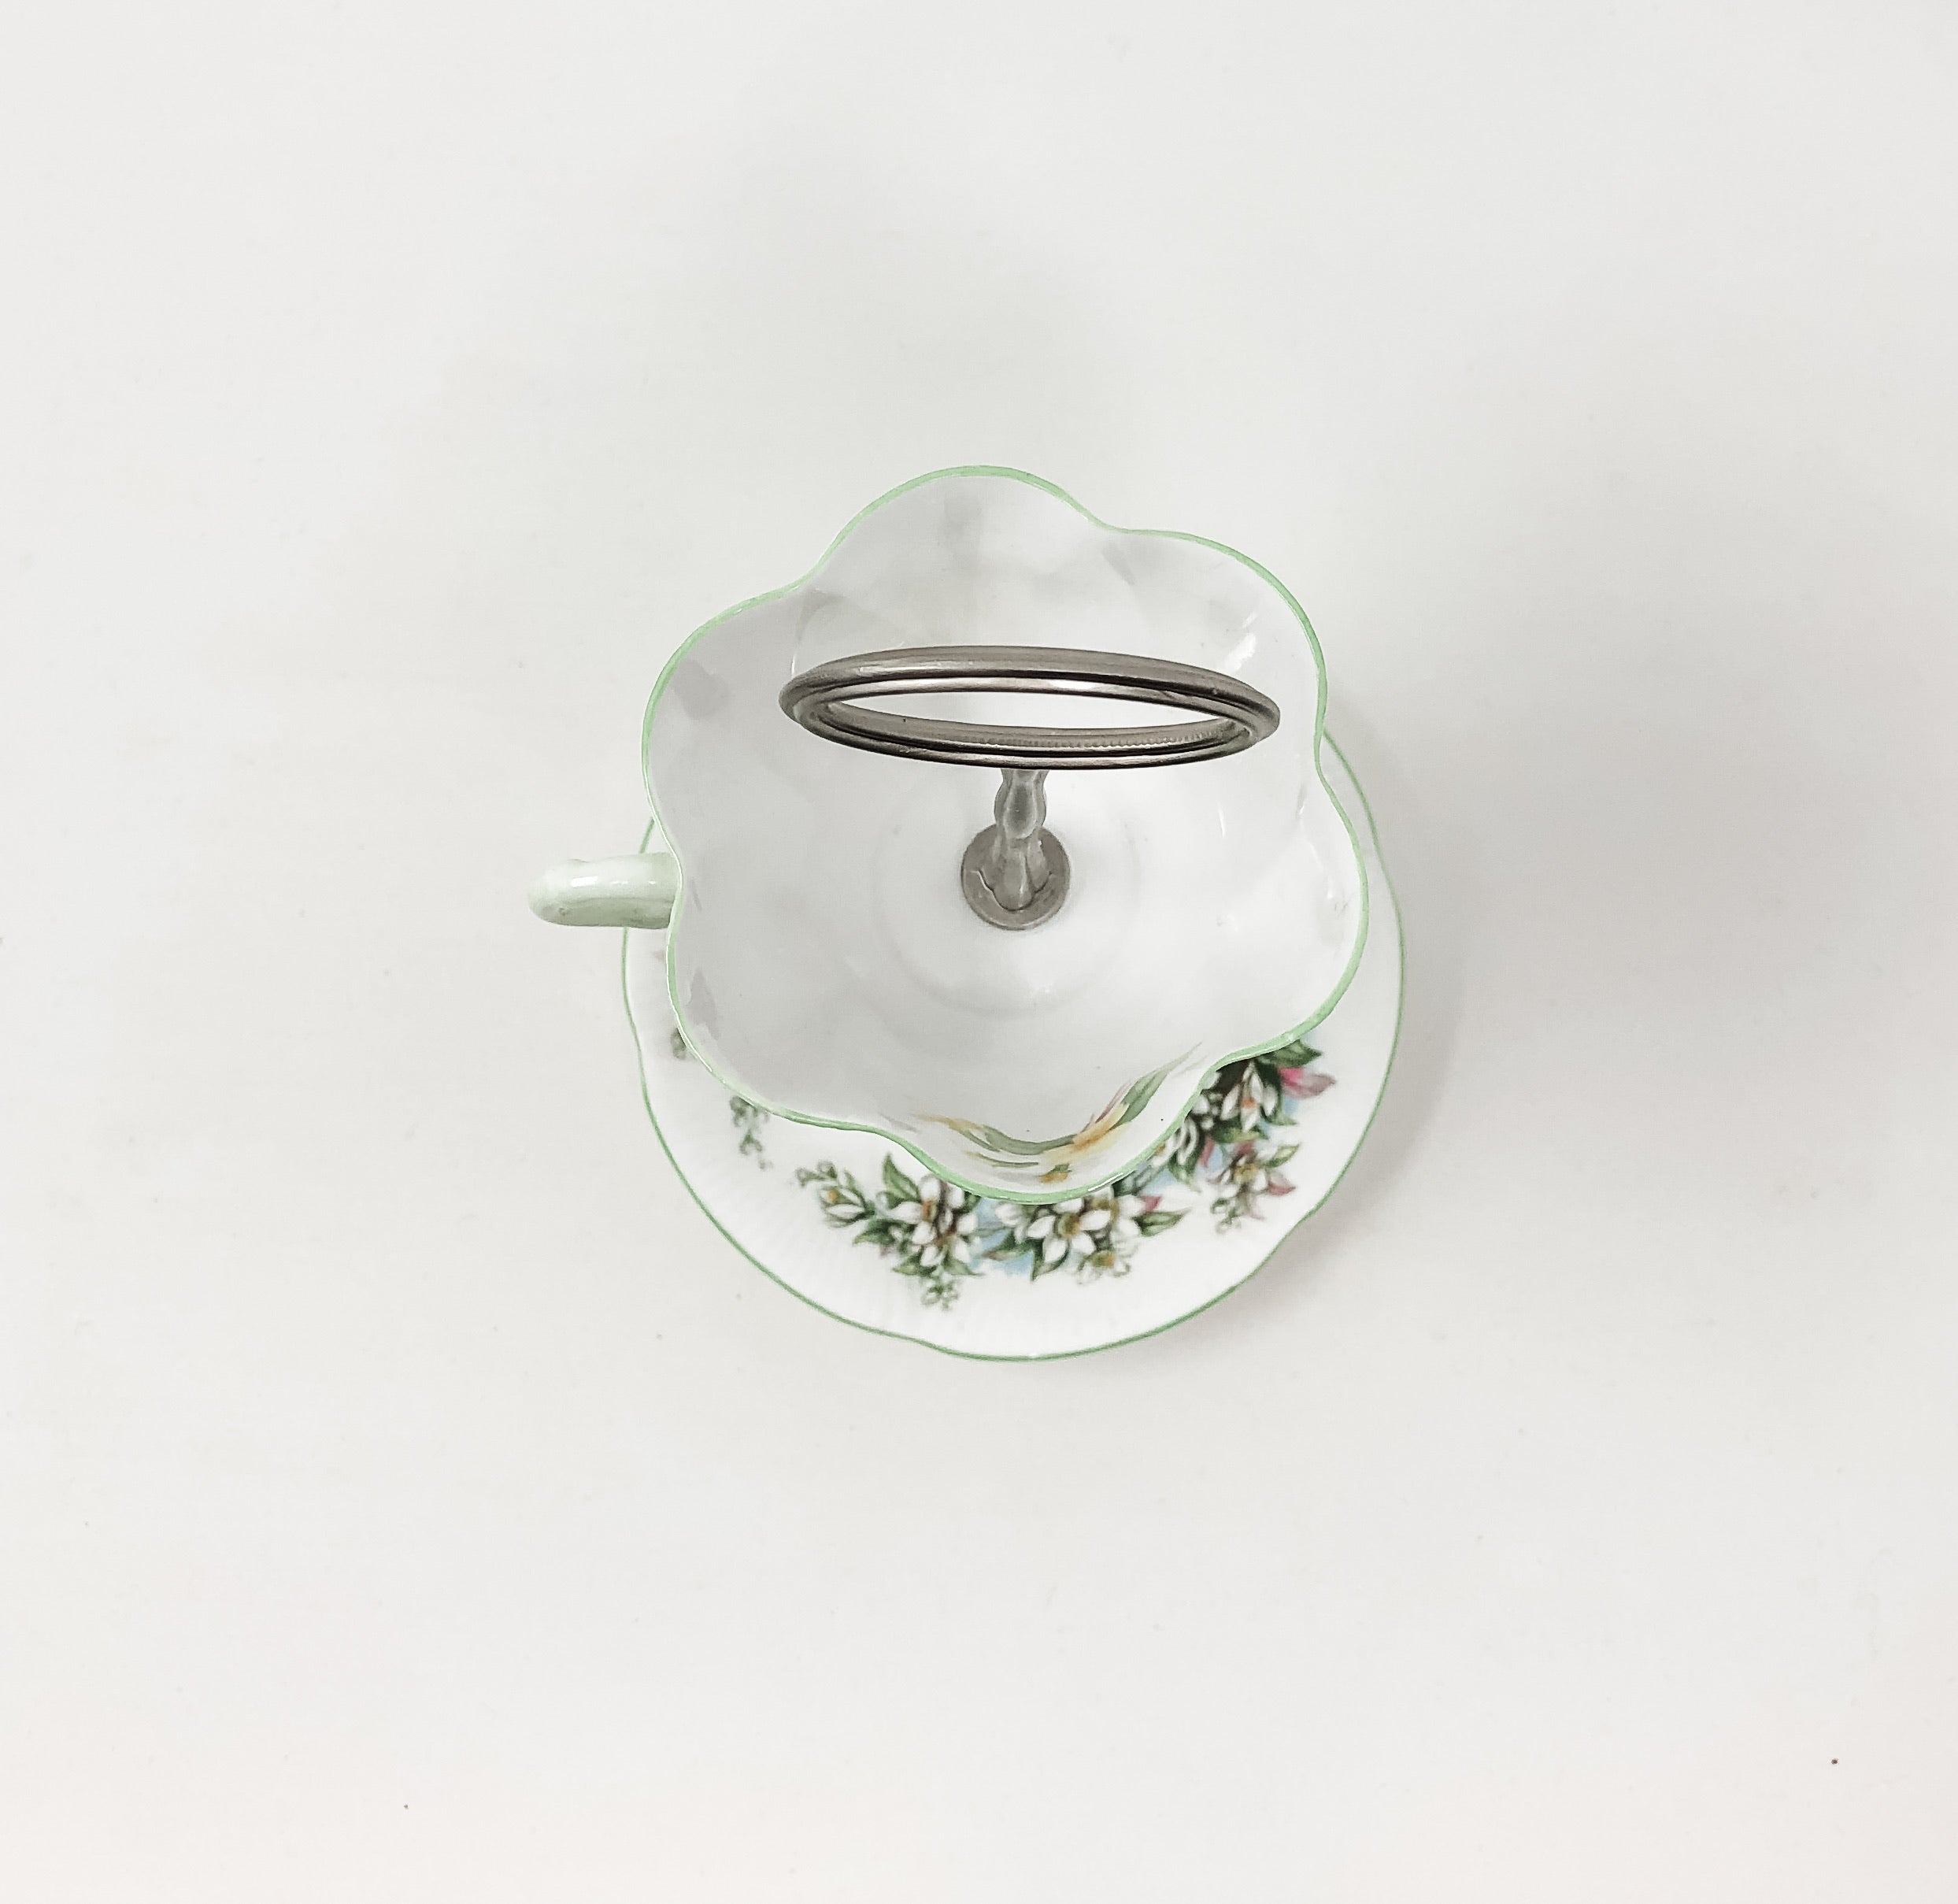 Shelley Royal Albert Green Floral Teacup & Saucer Stand Accessory Stand 2-Tier from above  | The Brooklyn Teacup